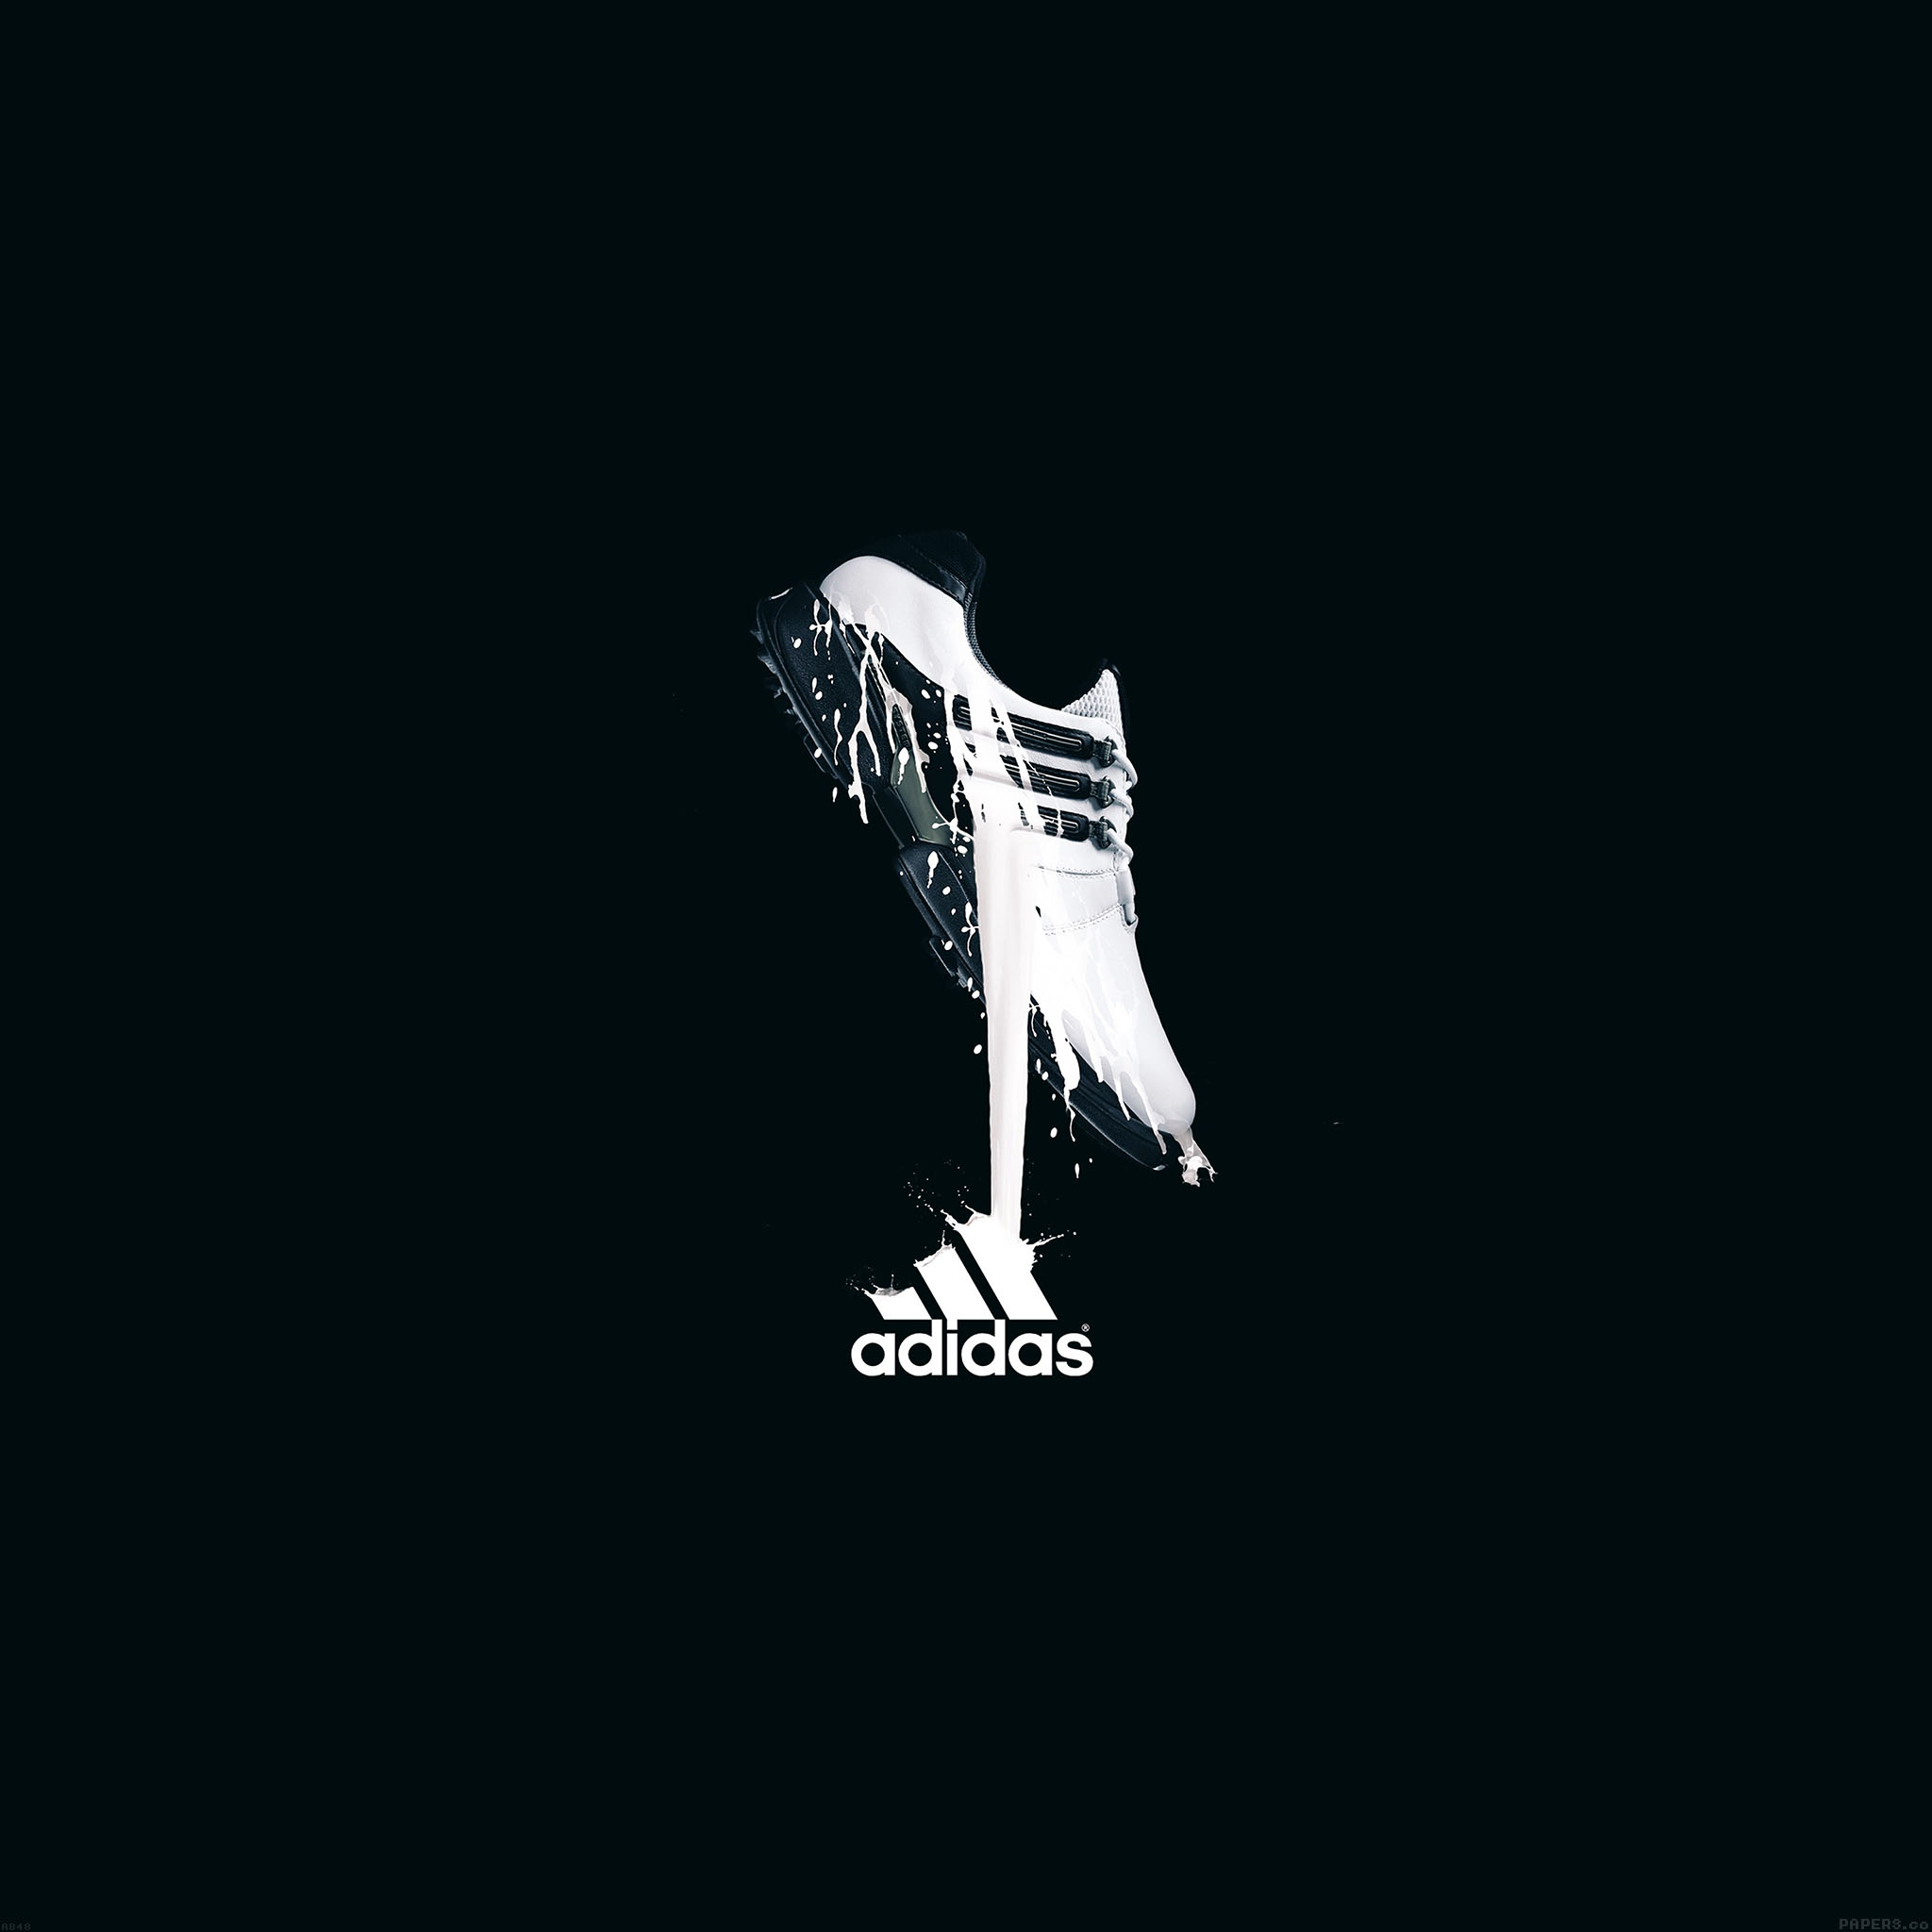 Ab48-wallpaper-adidas-black-logo-sports